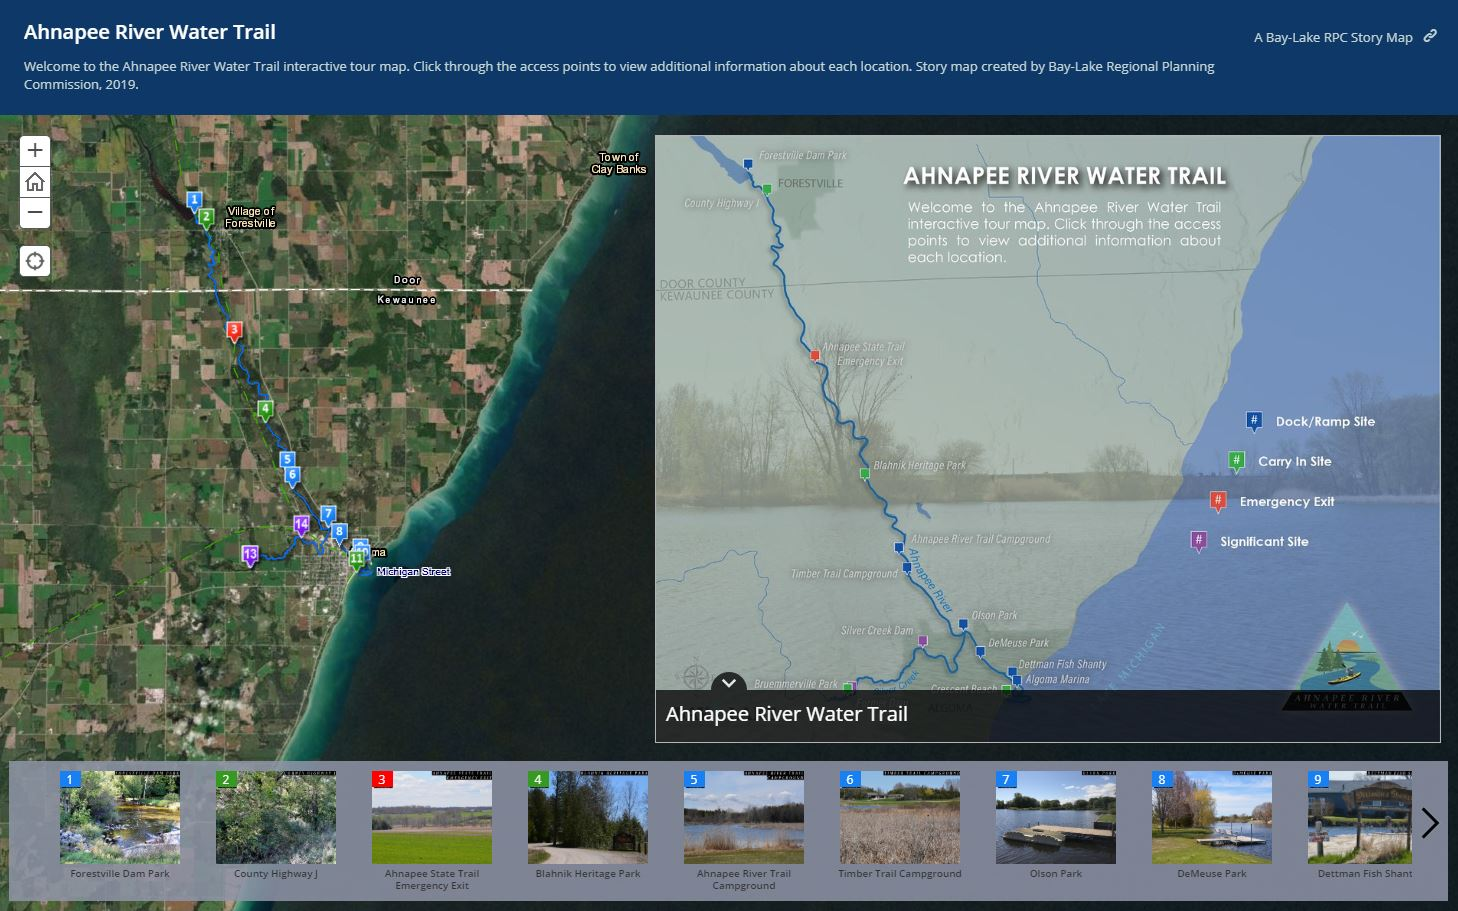 Ahnapee River Water Trail Story Map.JPG